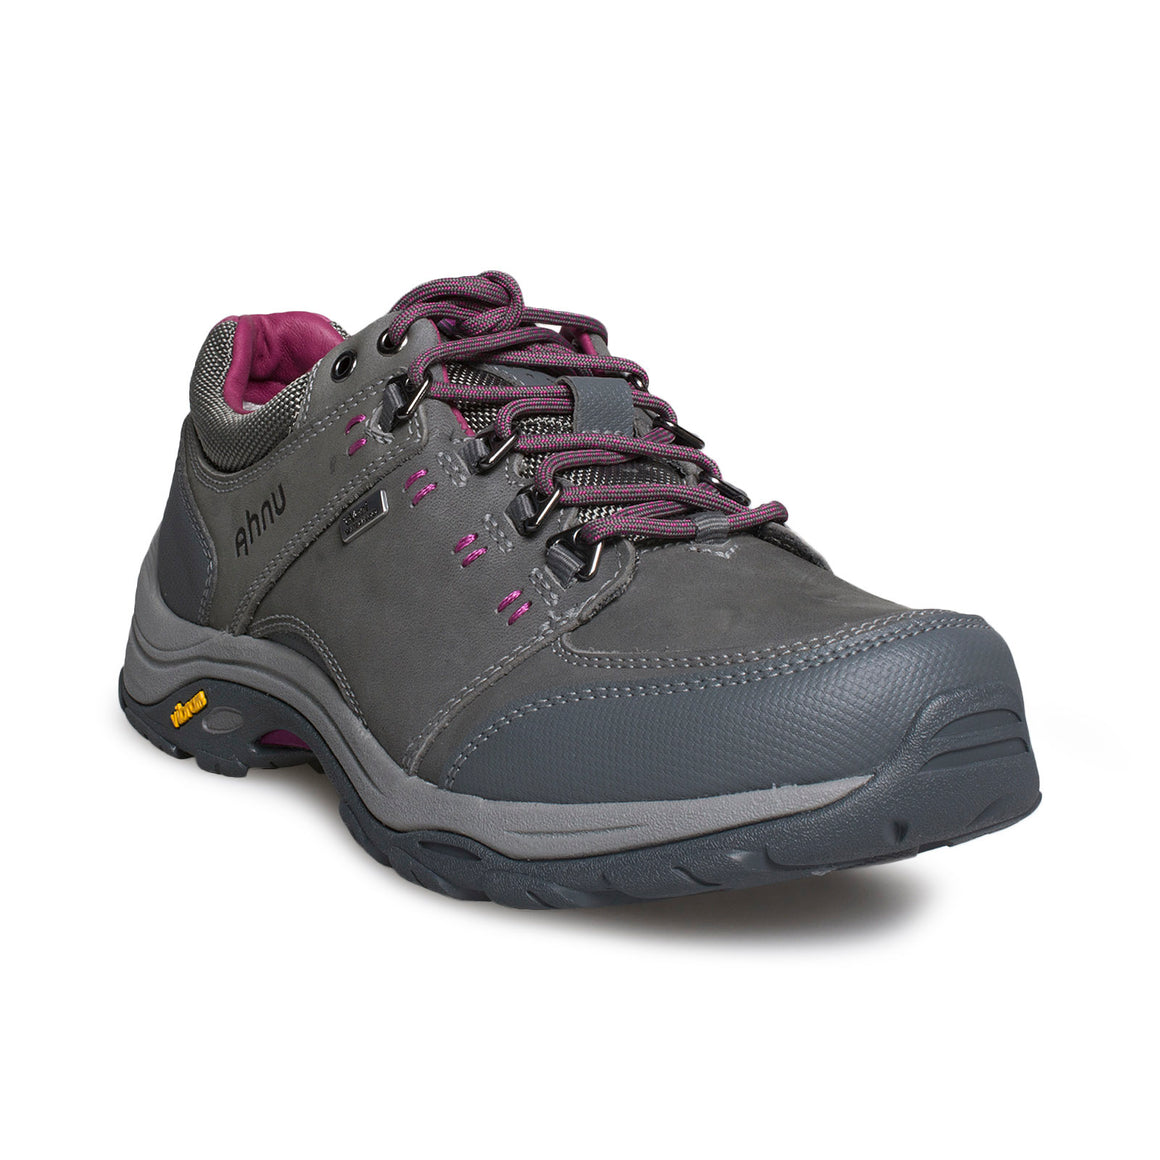 Ahnu Montara III Event Charcoal Grey Shoes - Women's